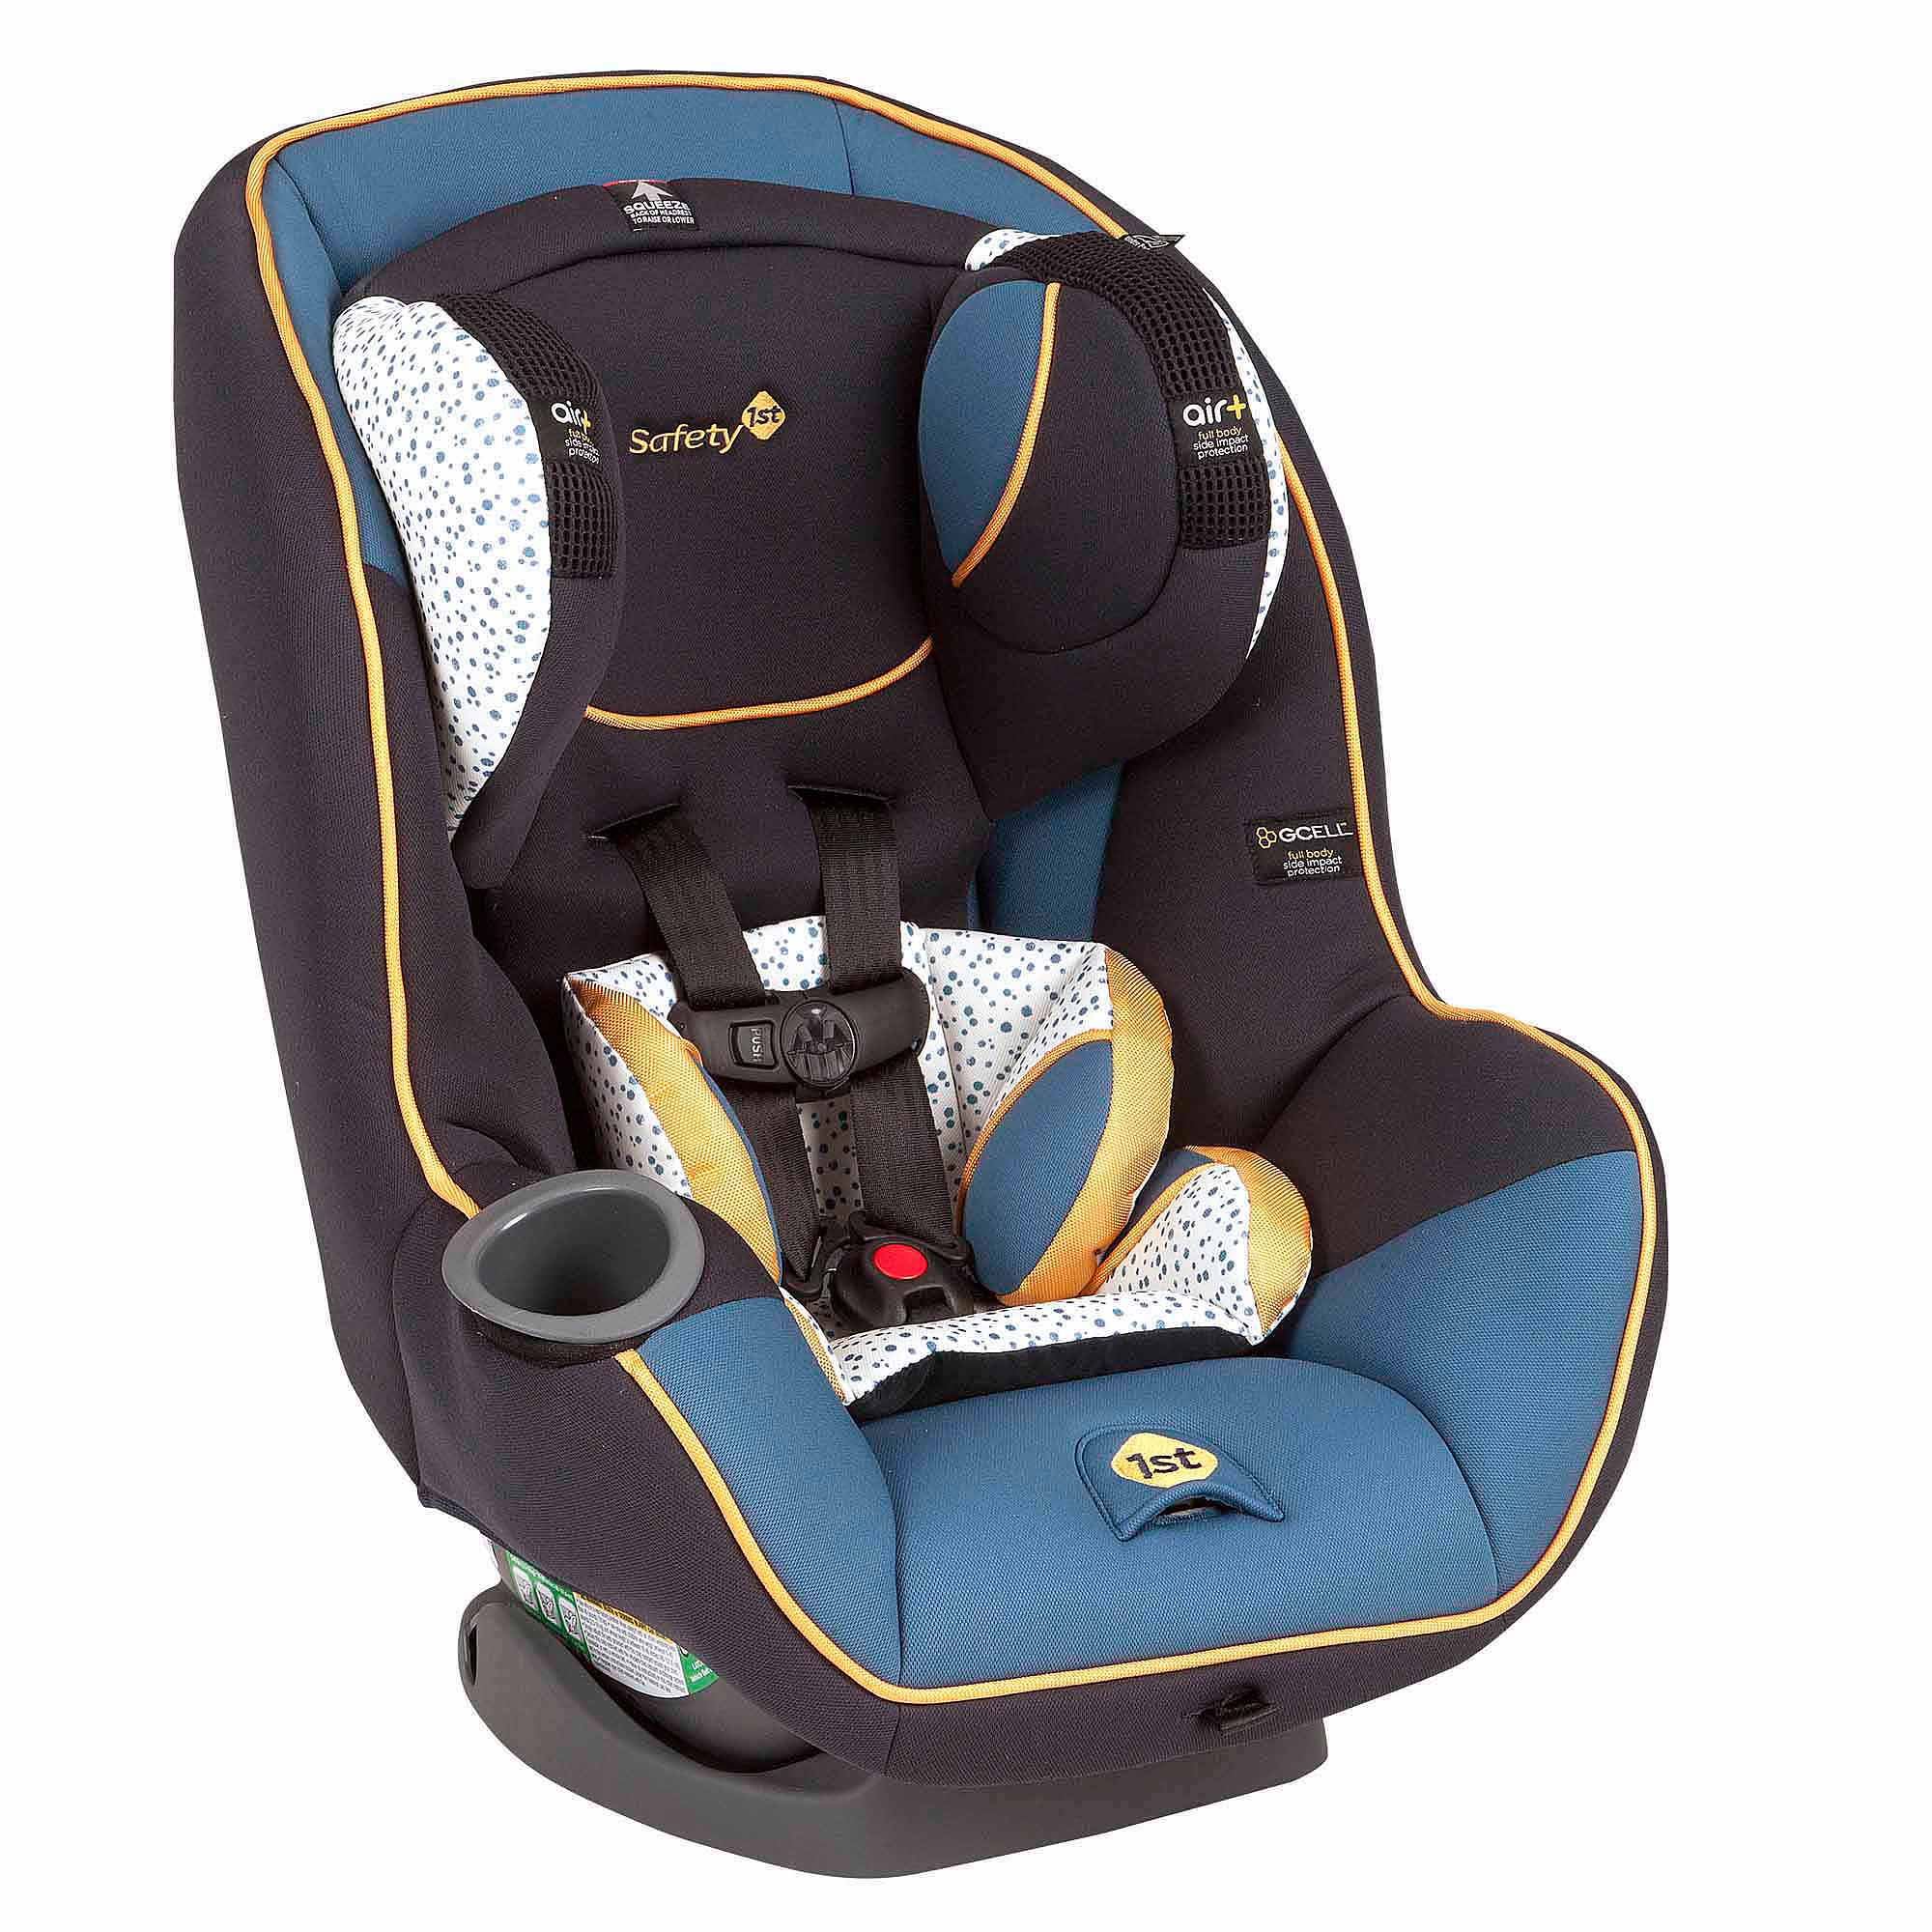 Safety 1st Advance Convertible Car Seat, SE 65 Air+, Twist of Citrus